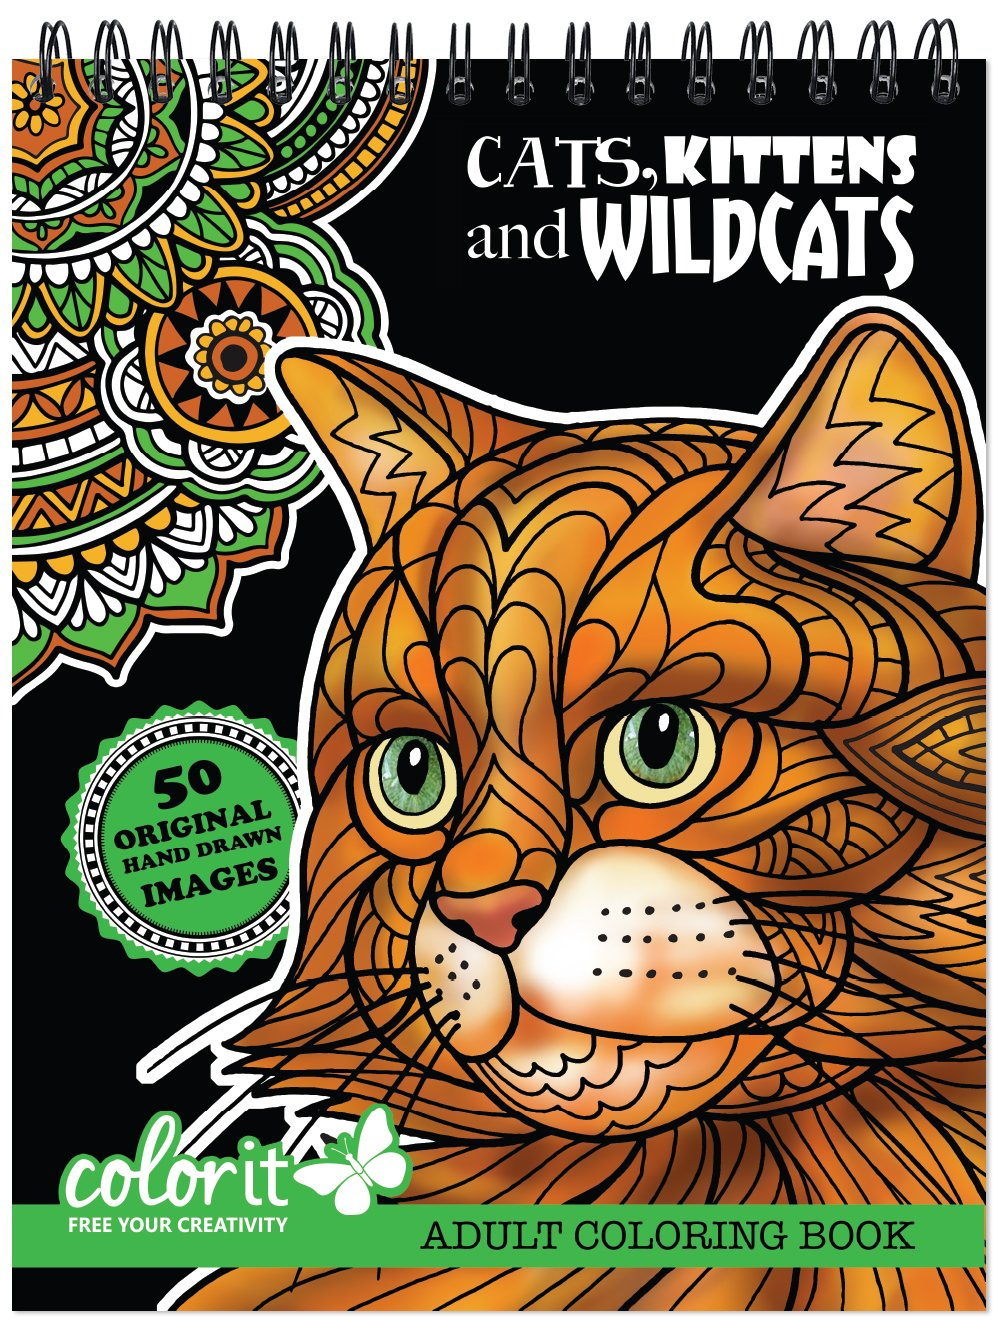 Cats Kittens And Wildcats Coloring Book For Adults With Creative Hand Drawn Designs To Color Animal Pages Printed On Artist Quality